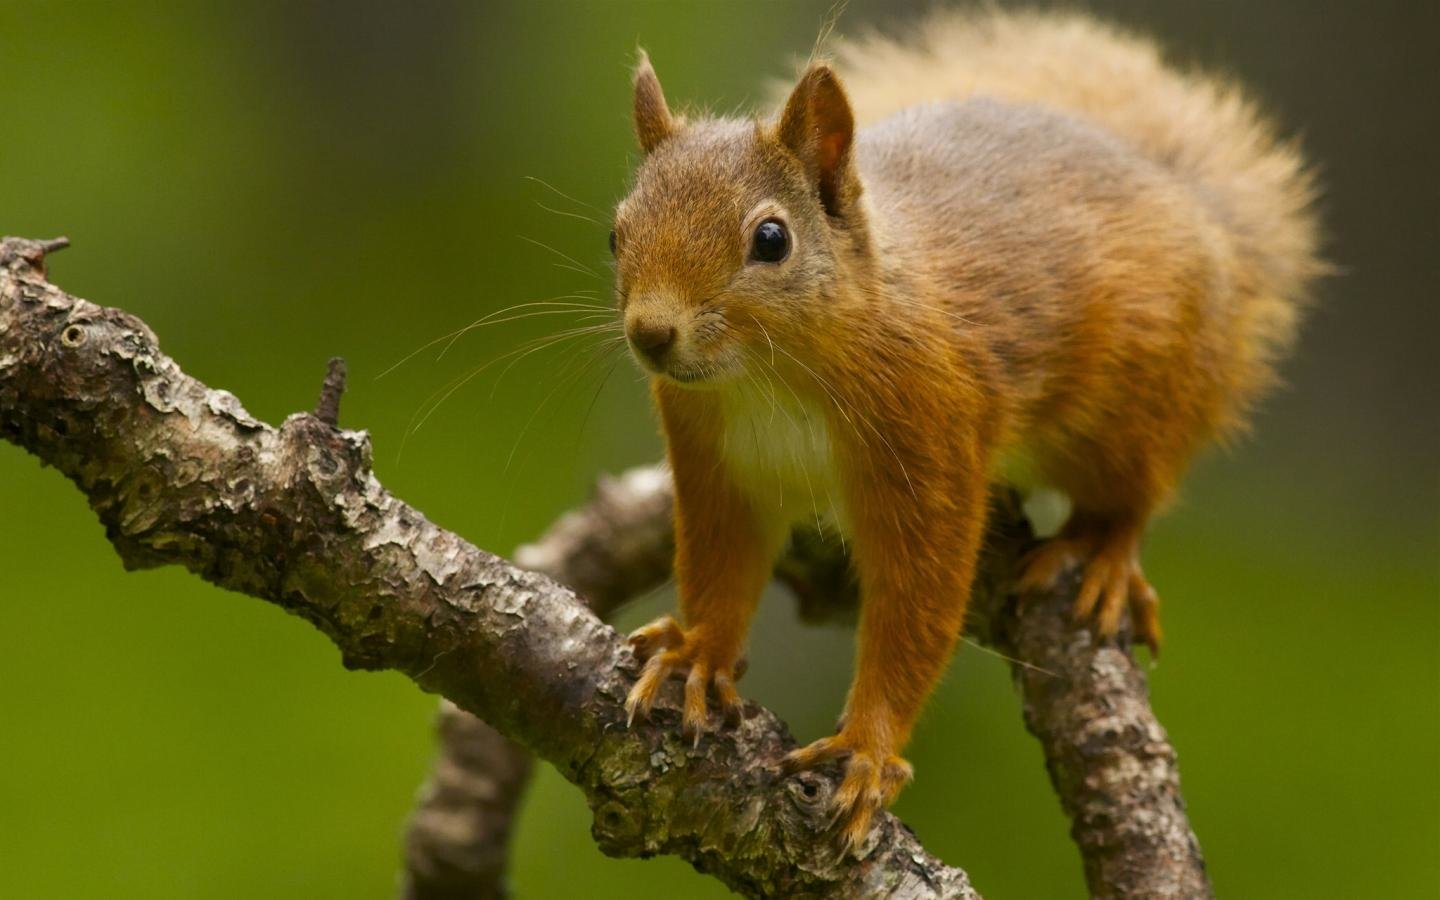 Download hd 1440x900 Squirrel PC wallpaper ID:311795 for free